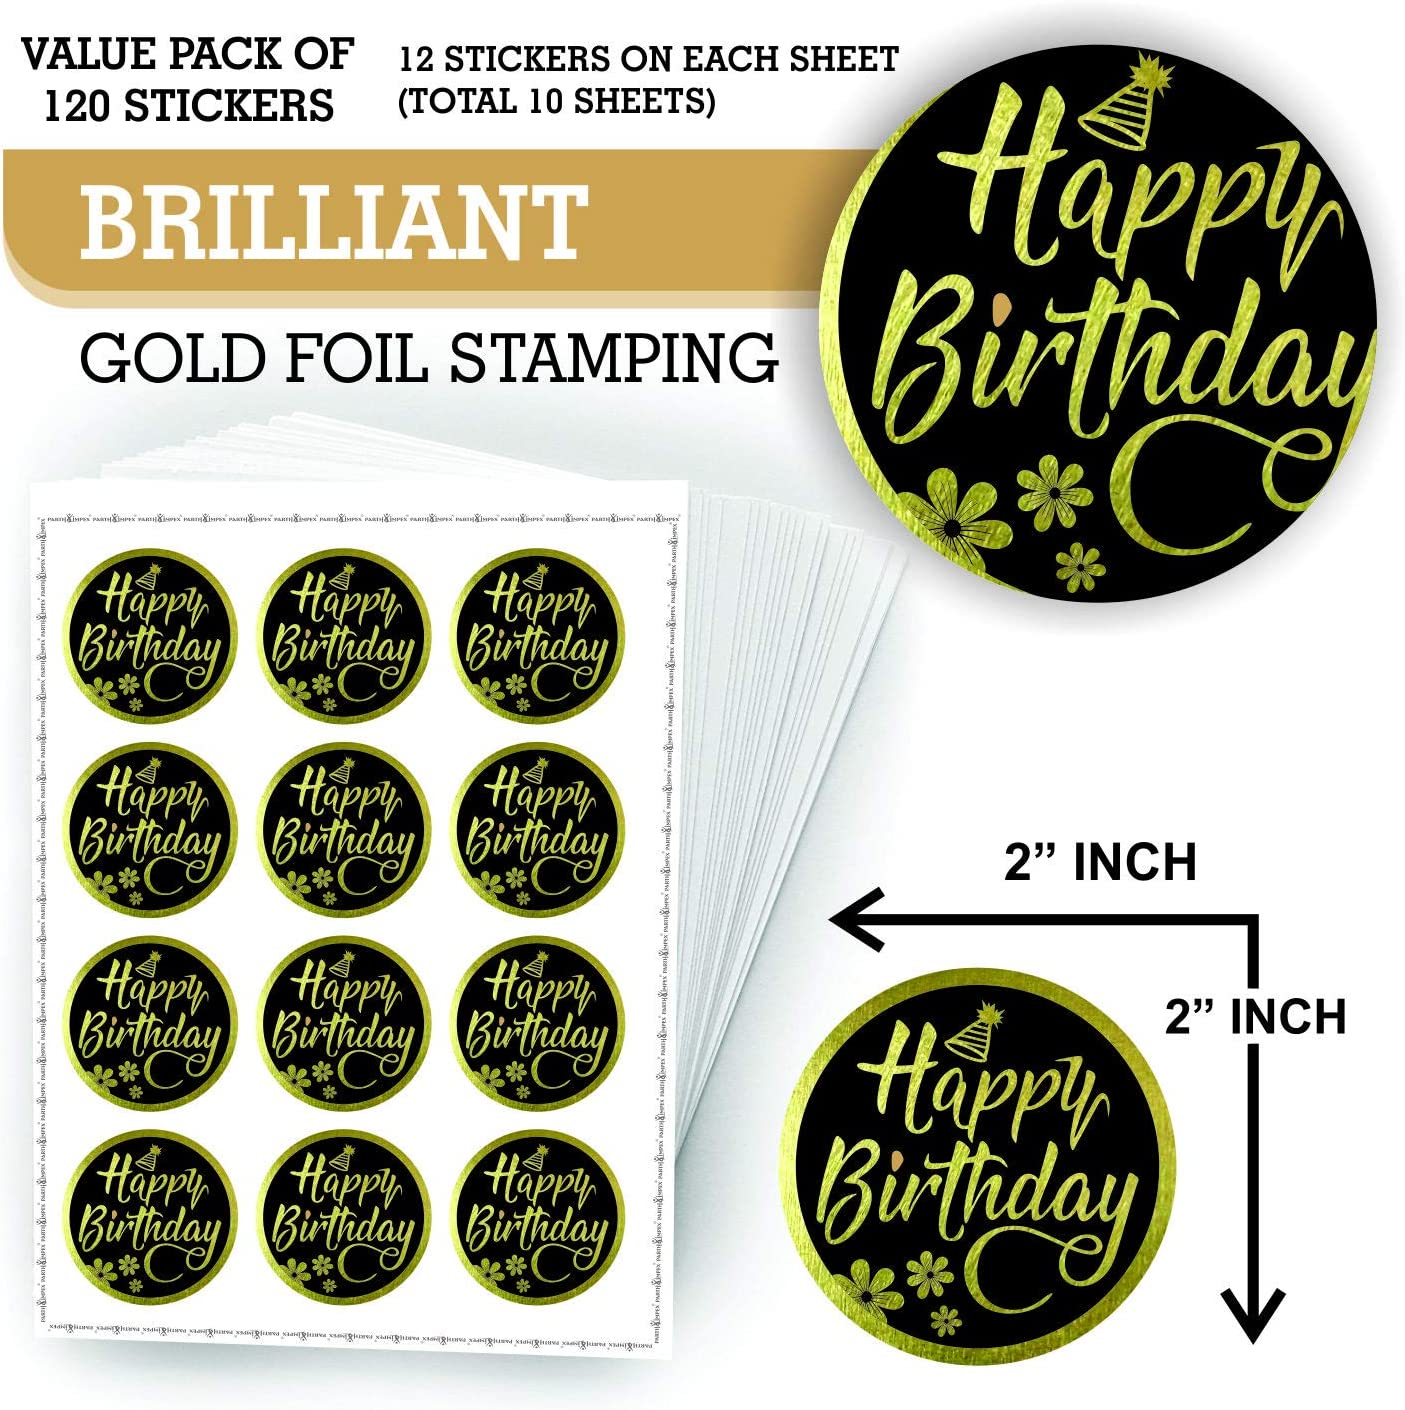 Pack of 2 Sheets Paper Studio Sticker Sheets HAPPY BIRTHDAY GOLD FOIL SCRIPT